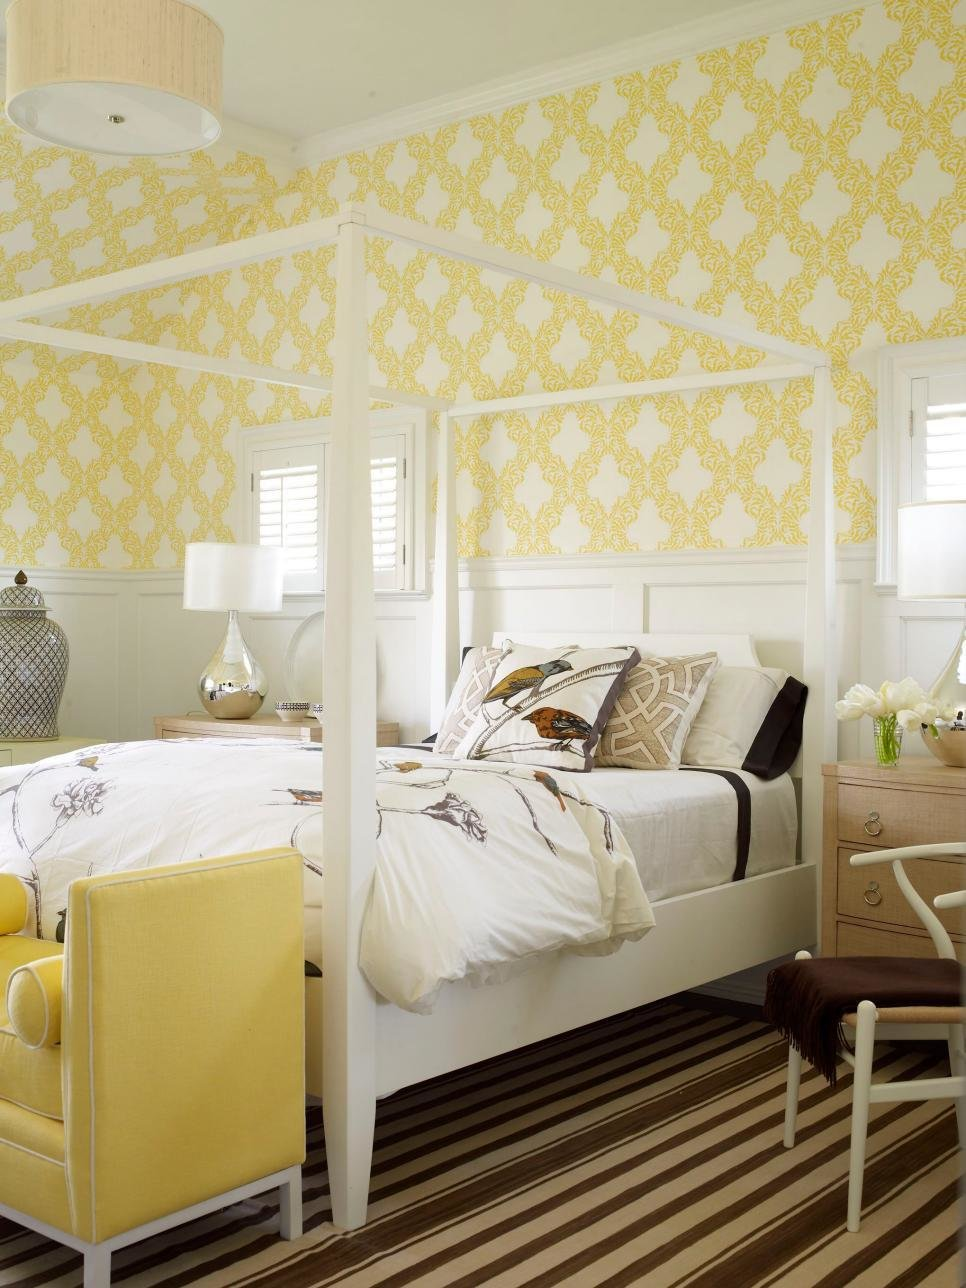 Best Build A Better Bedroom Hgtv With Pictures